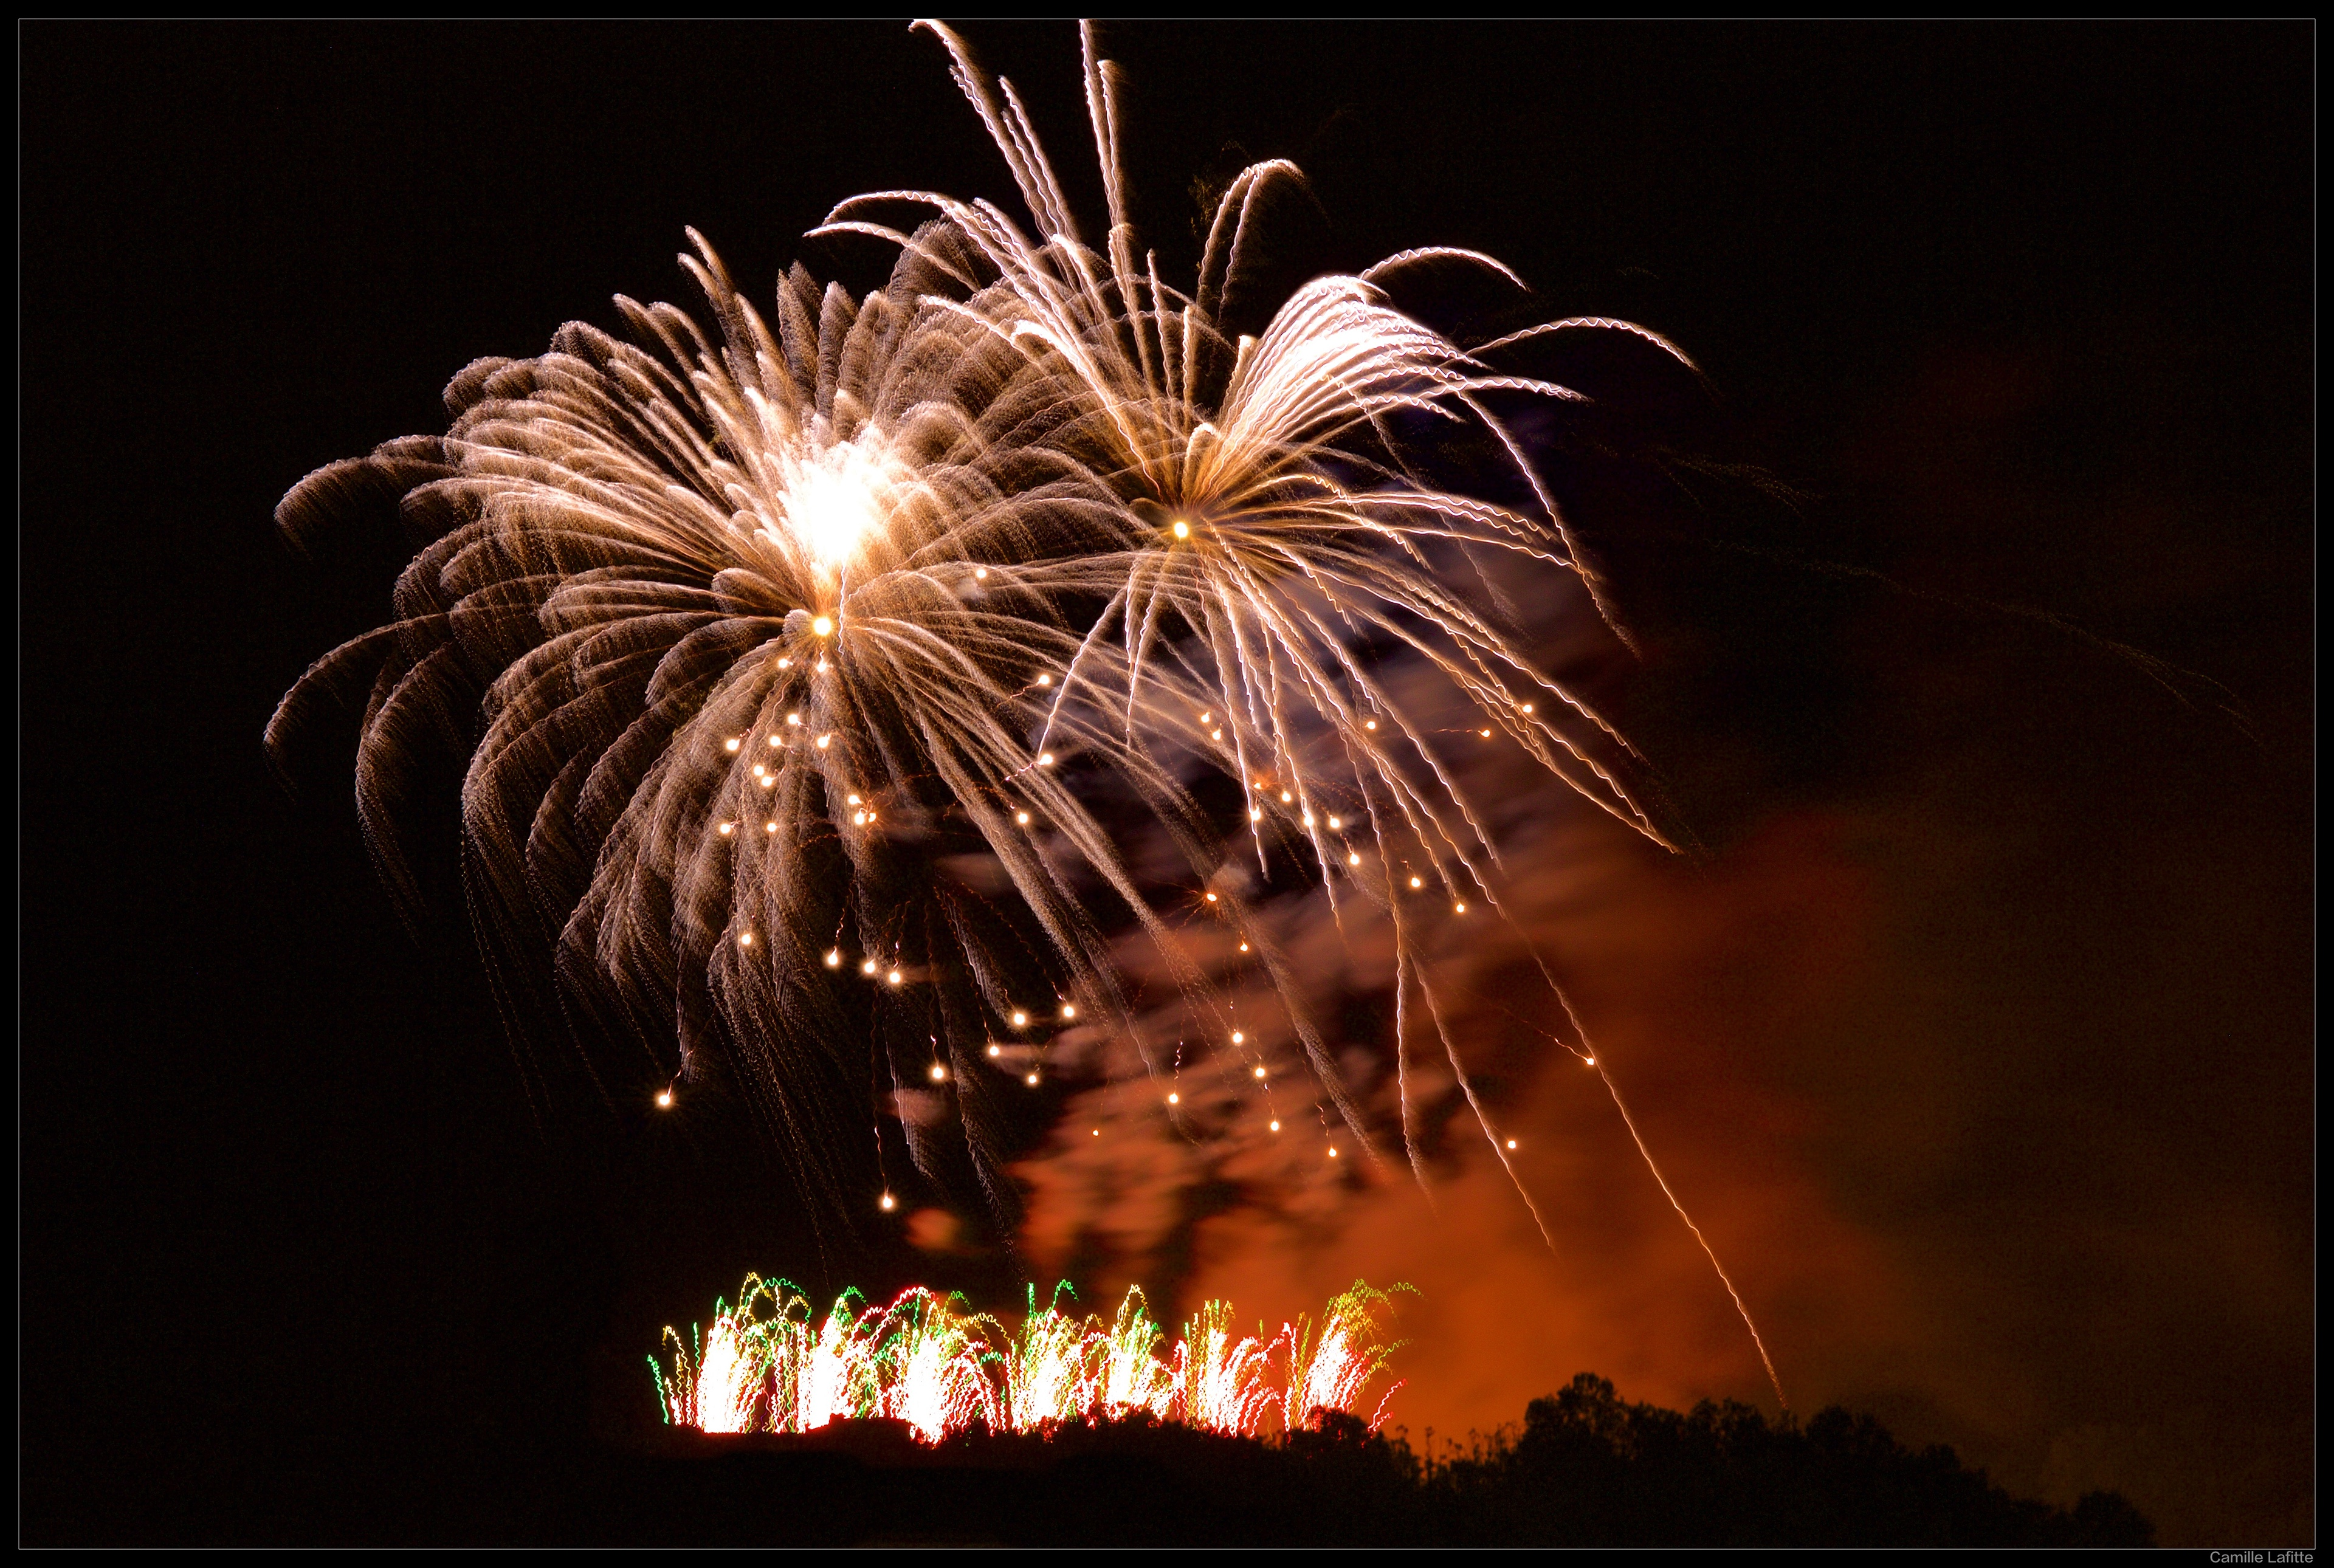 essay on fireworks Summary: an essay telling about fireworks learn about safety issues, how fireworks are made, and when and why fireworks are used just about everyone in the united states has some personal experience with fireworks, either from fourth of july or new year's eve celebrations for example, you have.